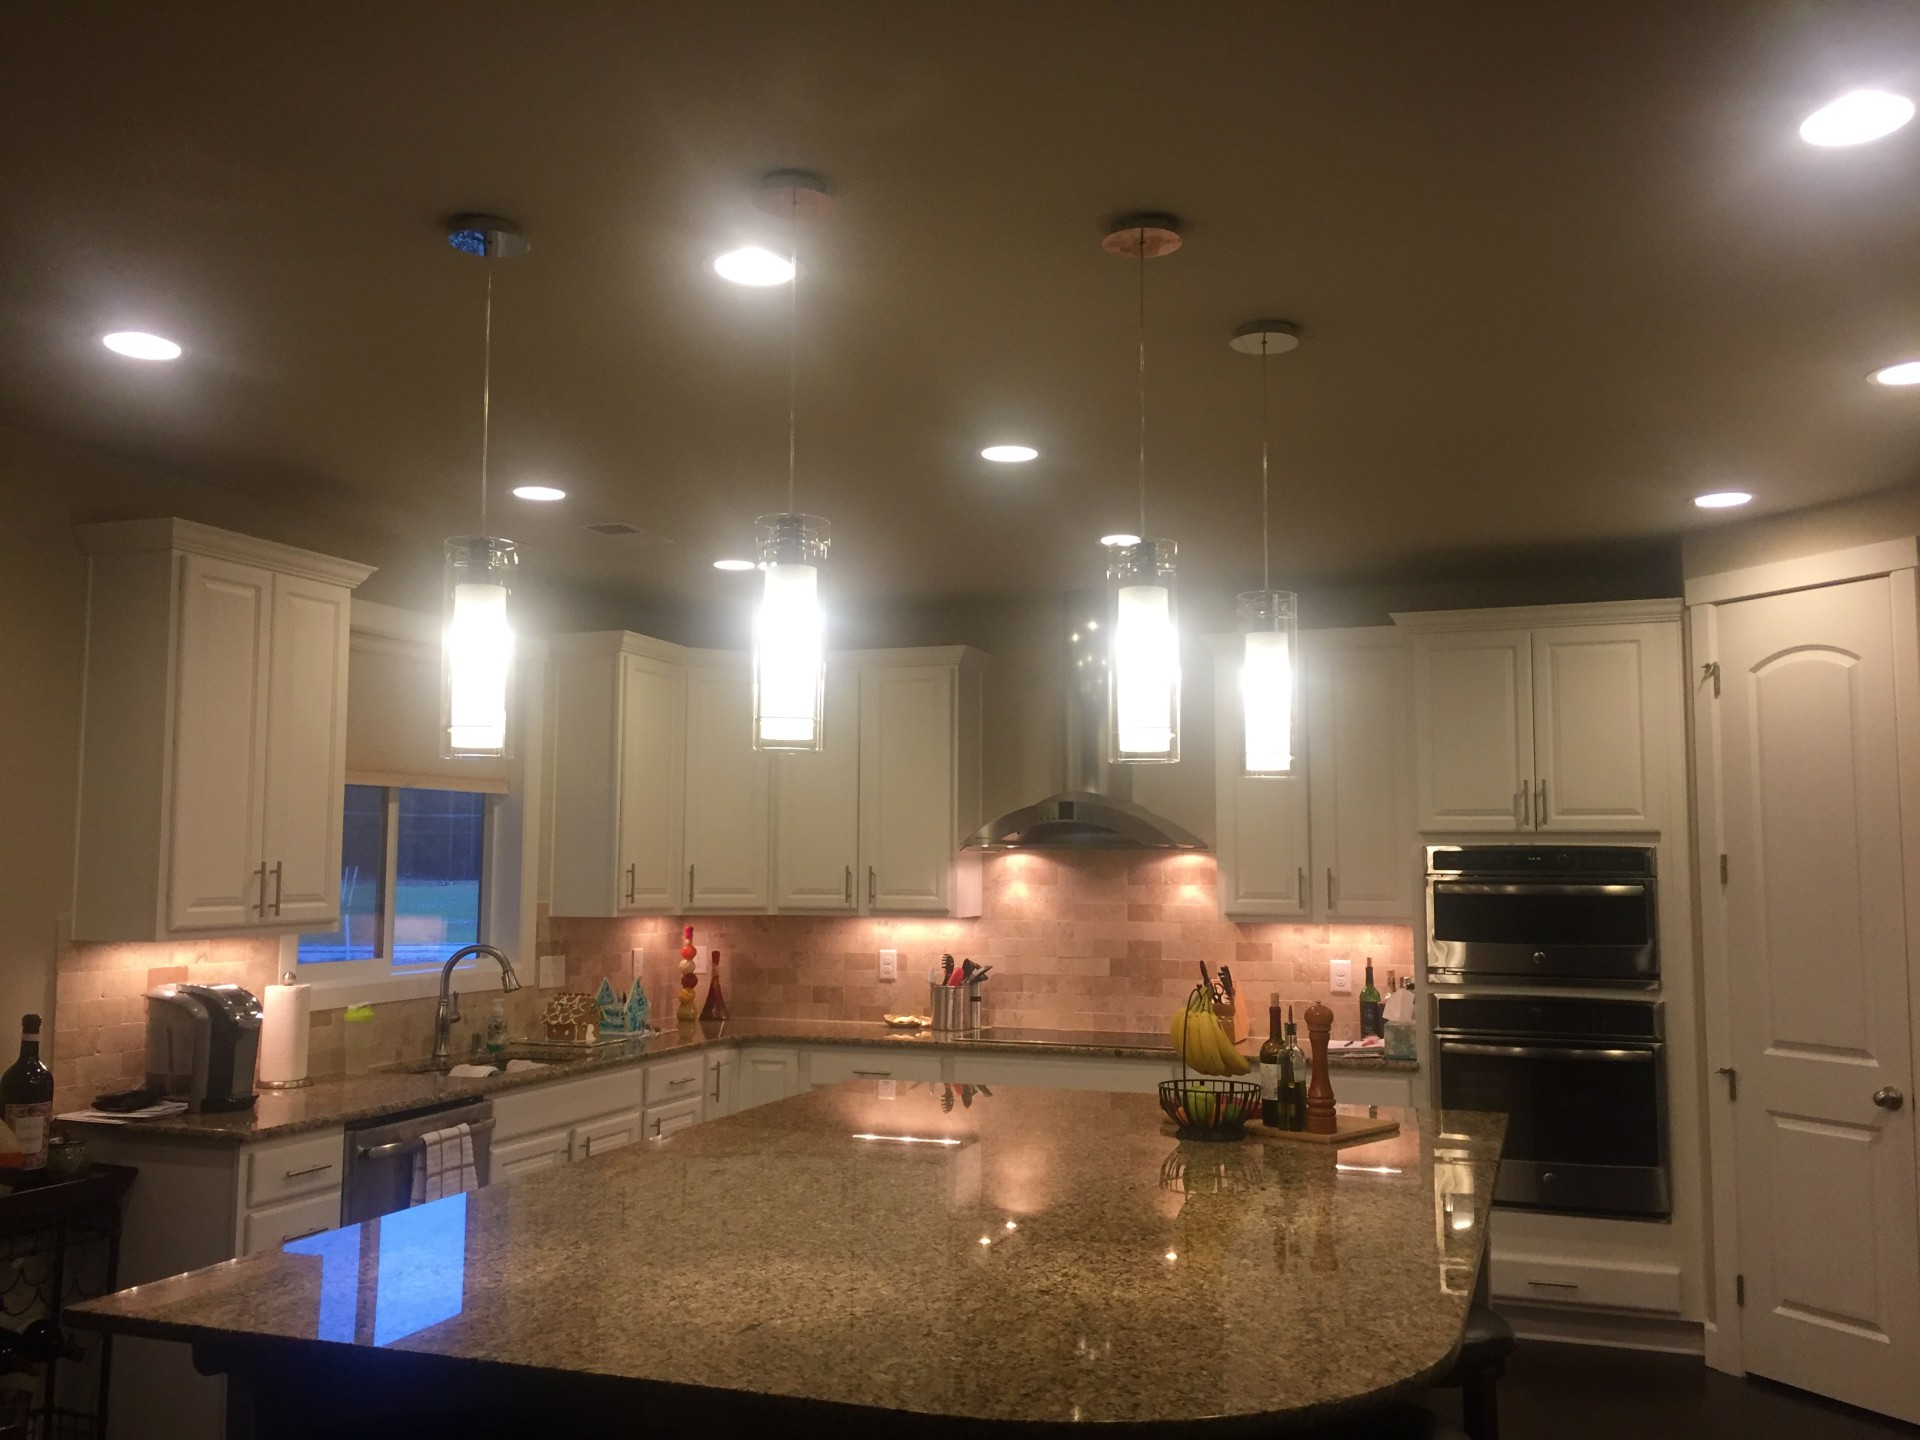 under cabinet lights, beautiful kitchen lights, pendant lights, recessed lighting, granite counter tops, kitchen island, white cabinets, huge kitchen, big kitchen